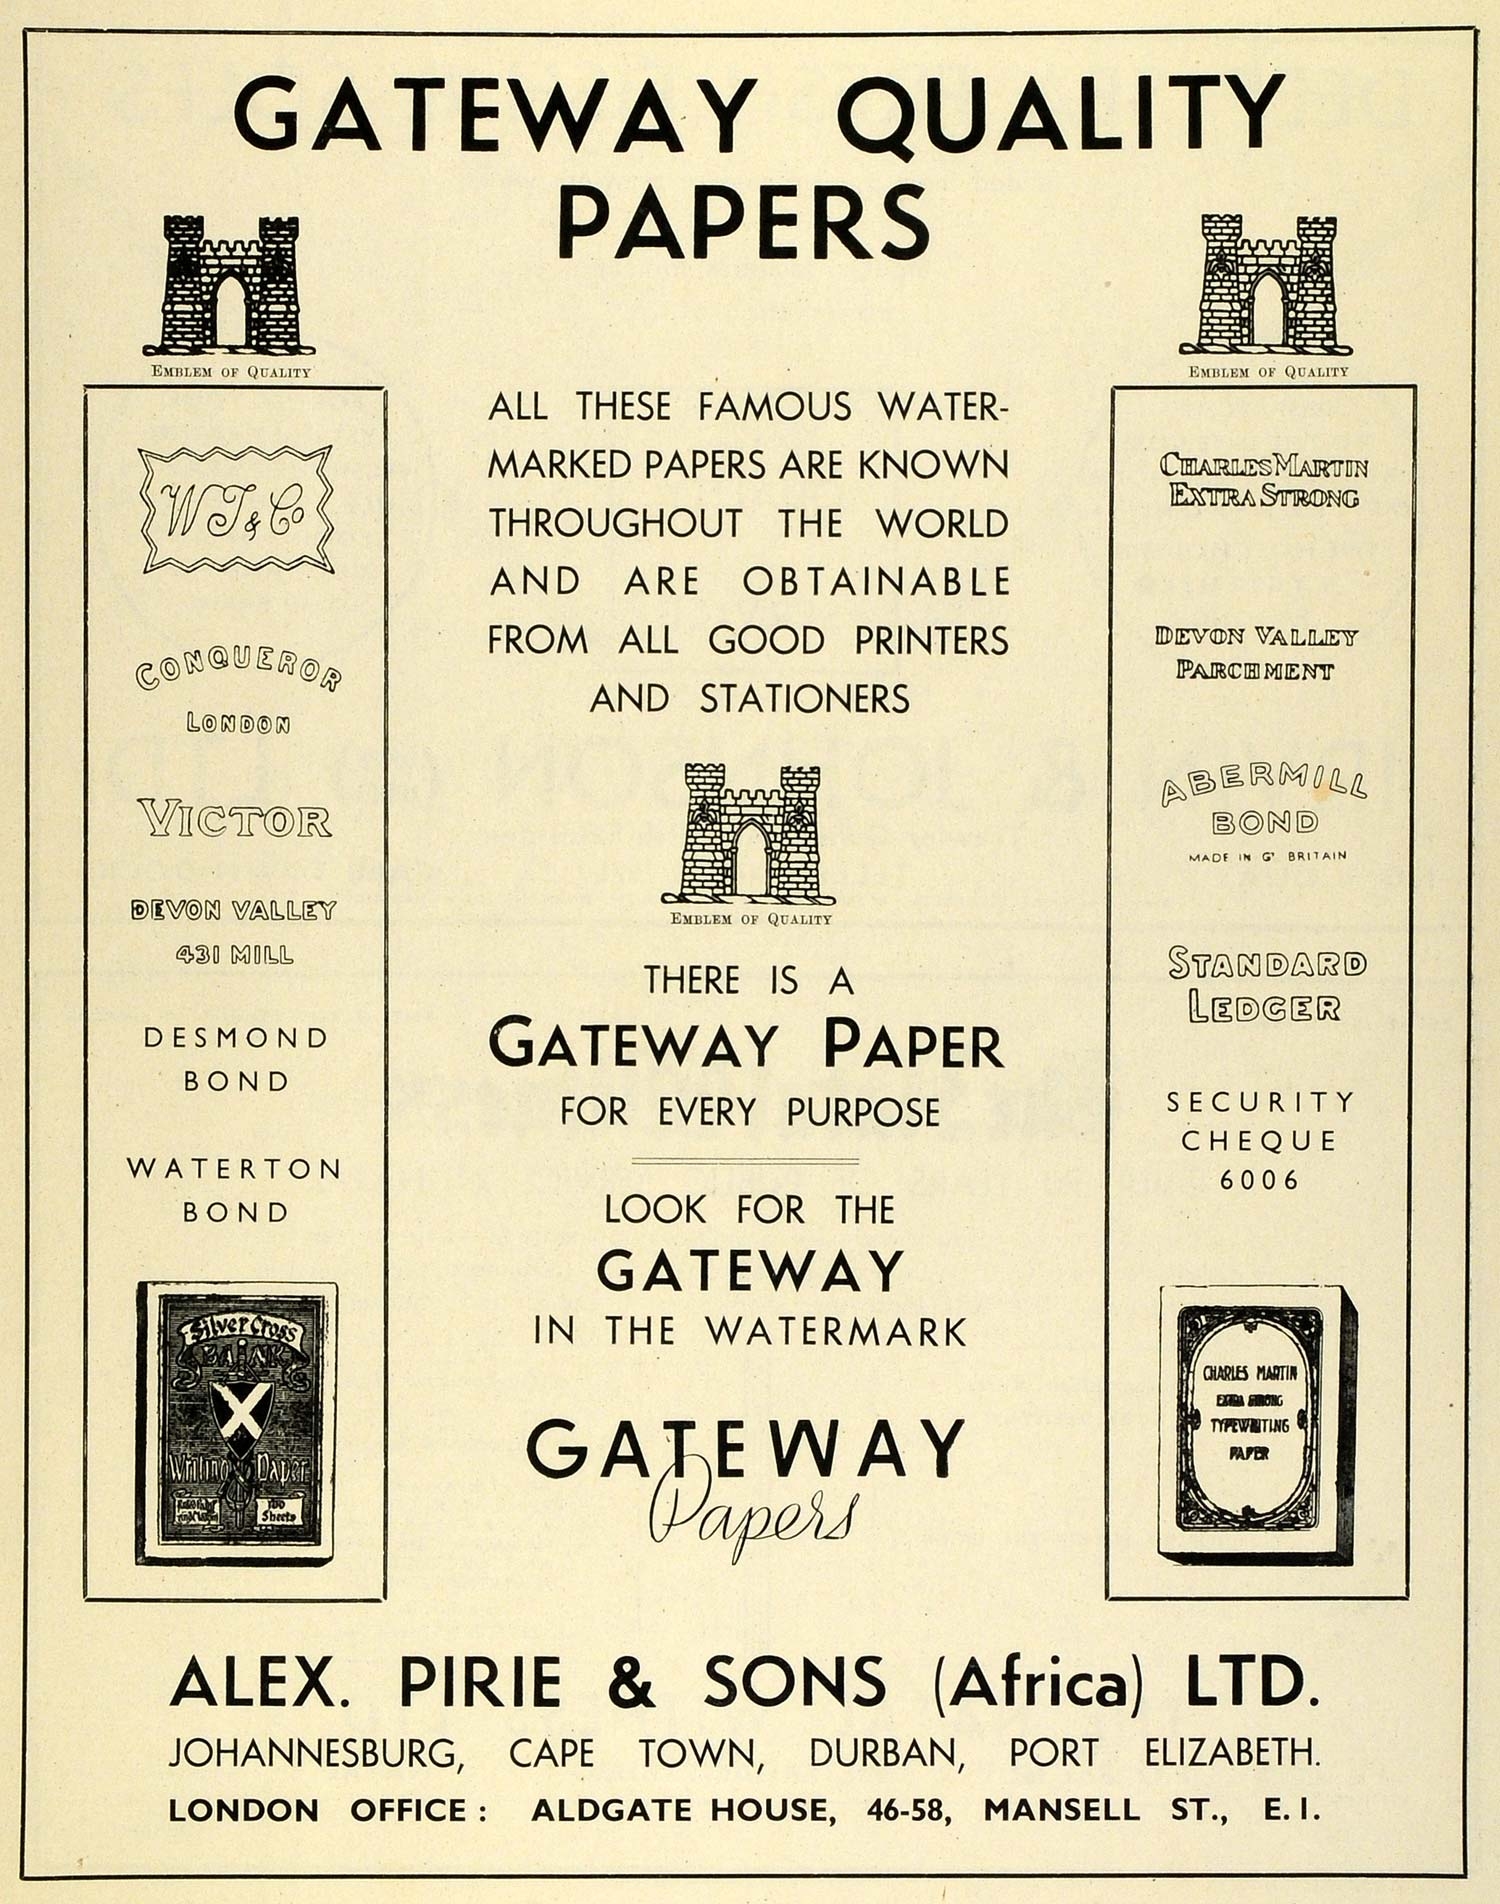 1939 Ad Alex Pirie & Sons Gateway Papers Johannesburg South Africa Bond SAA1